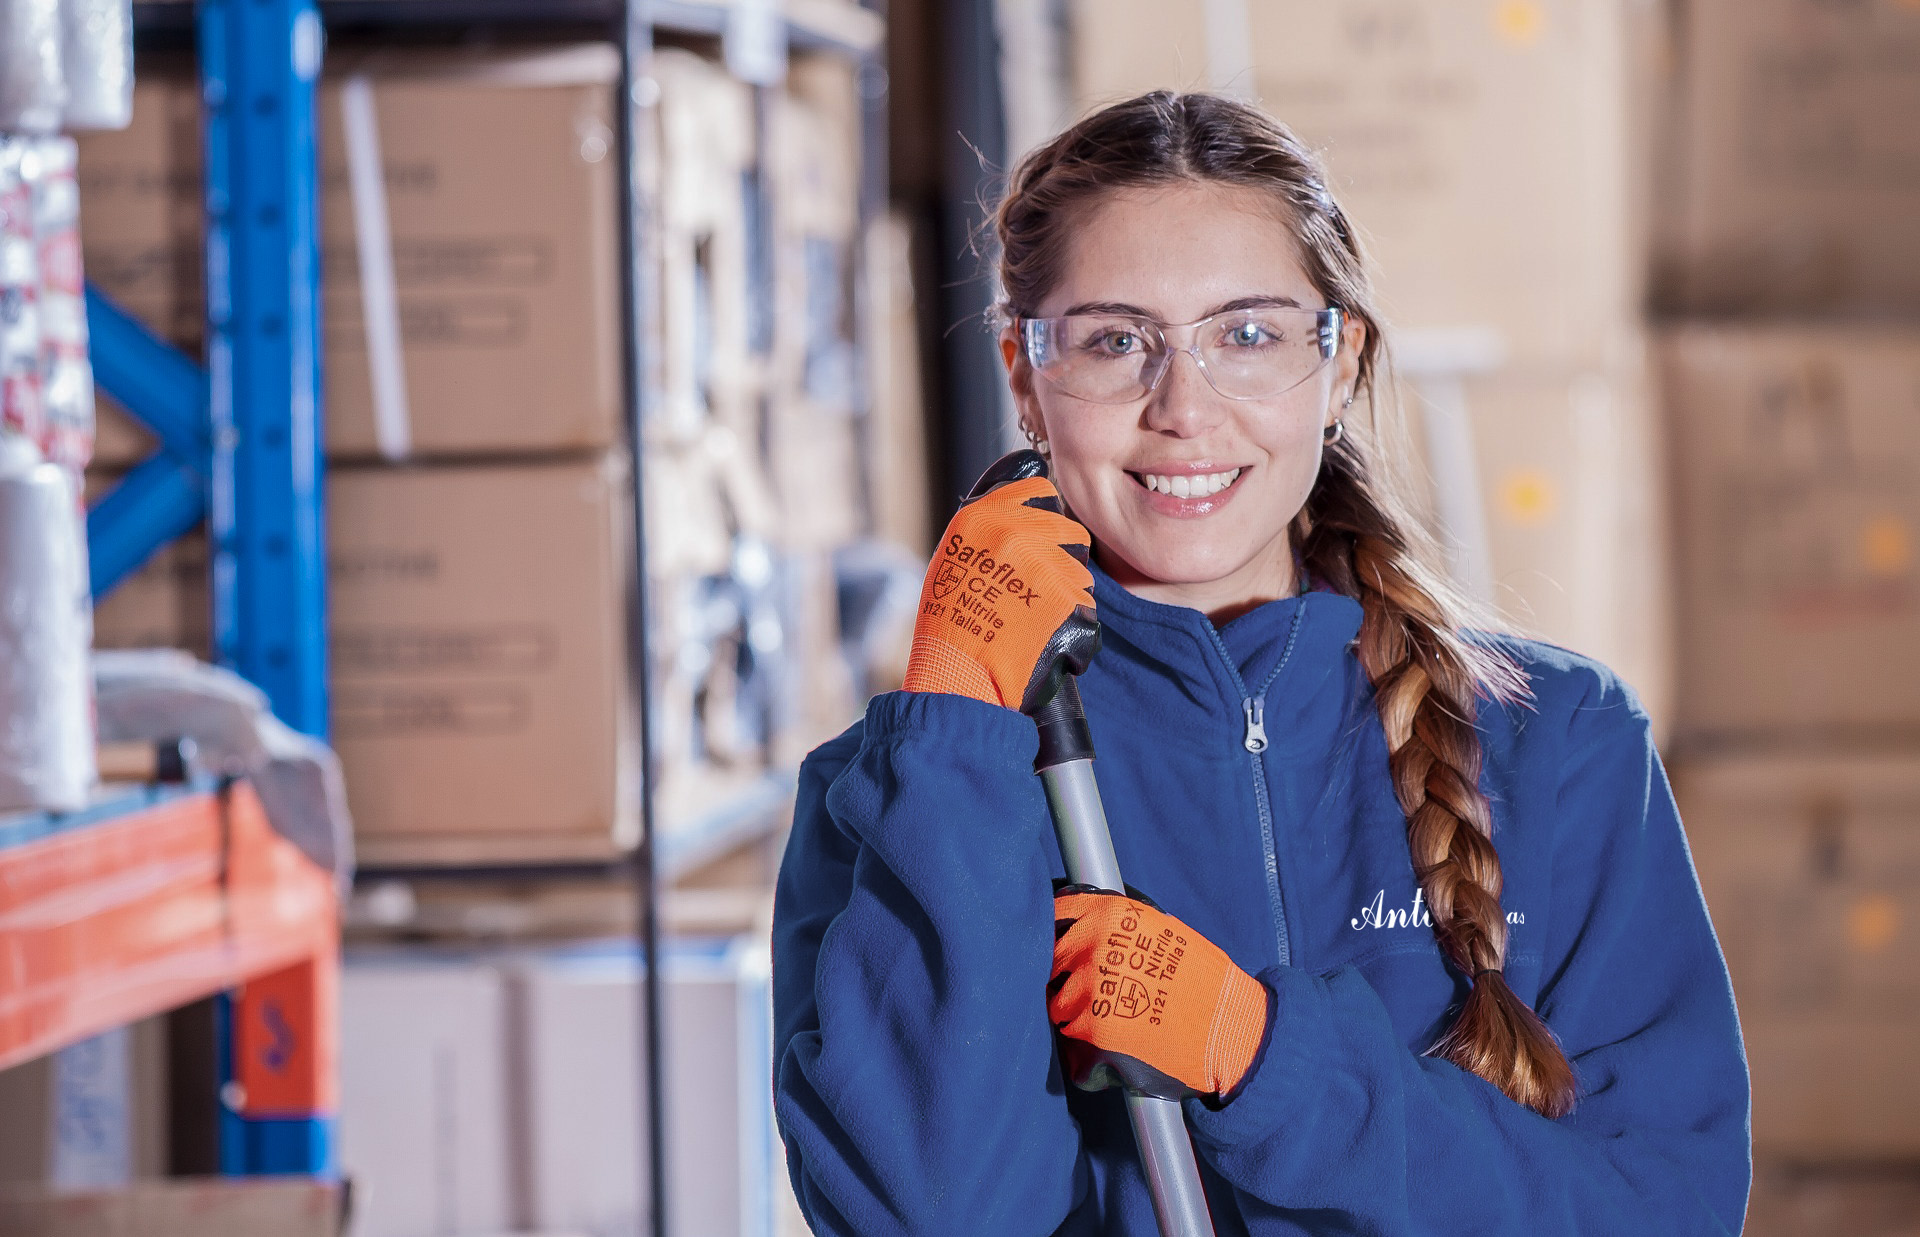 An employee smile while is working